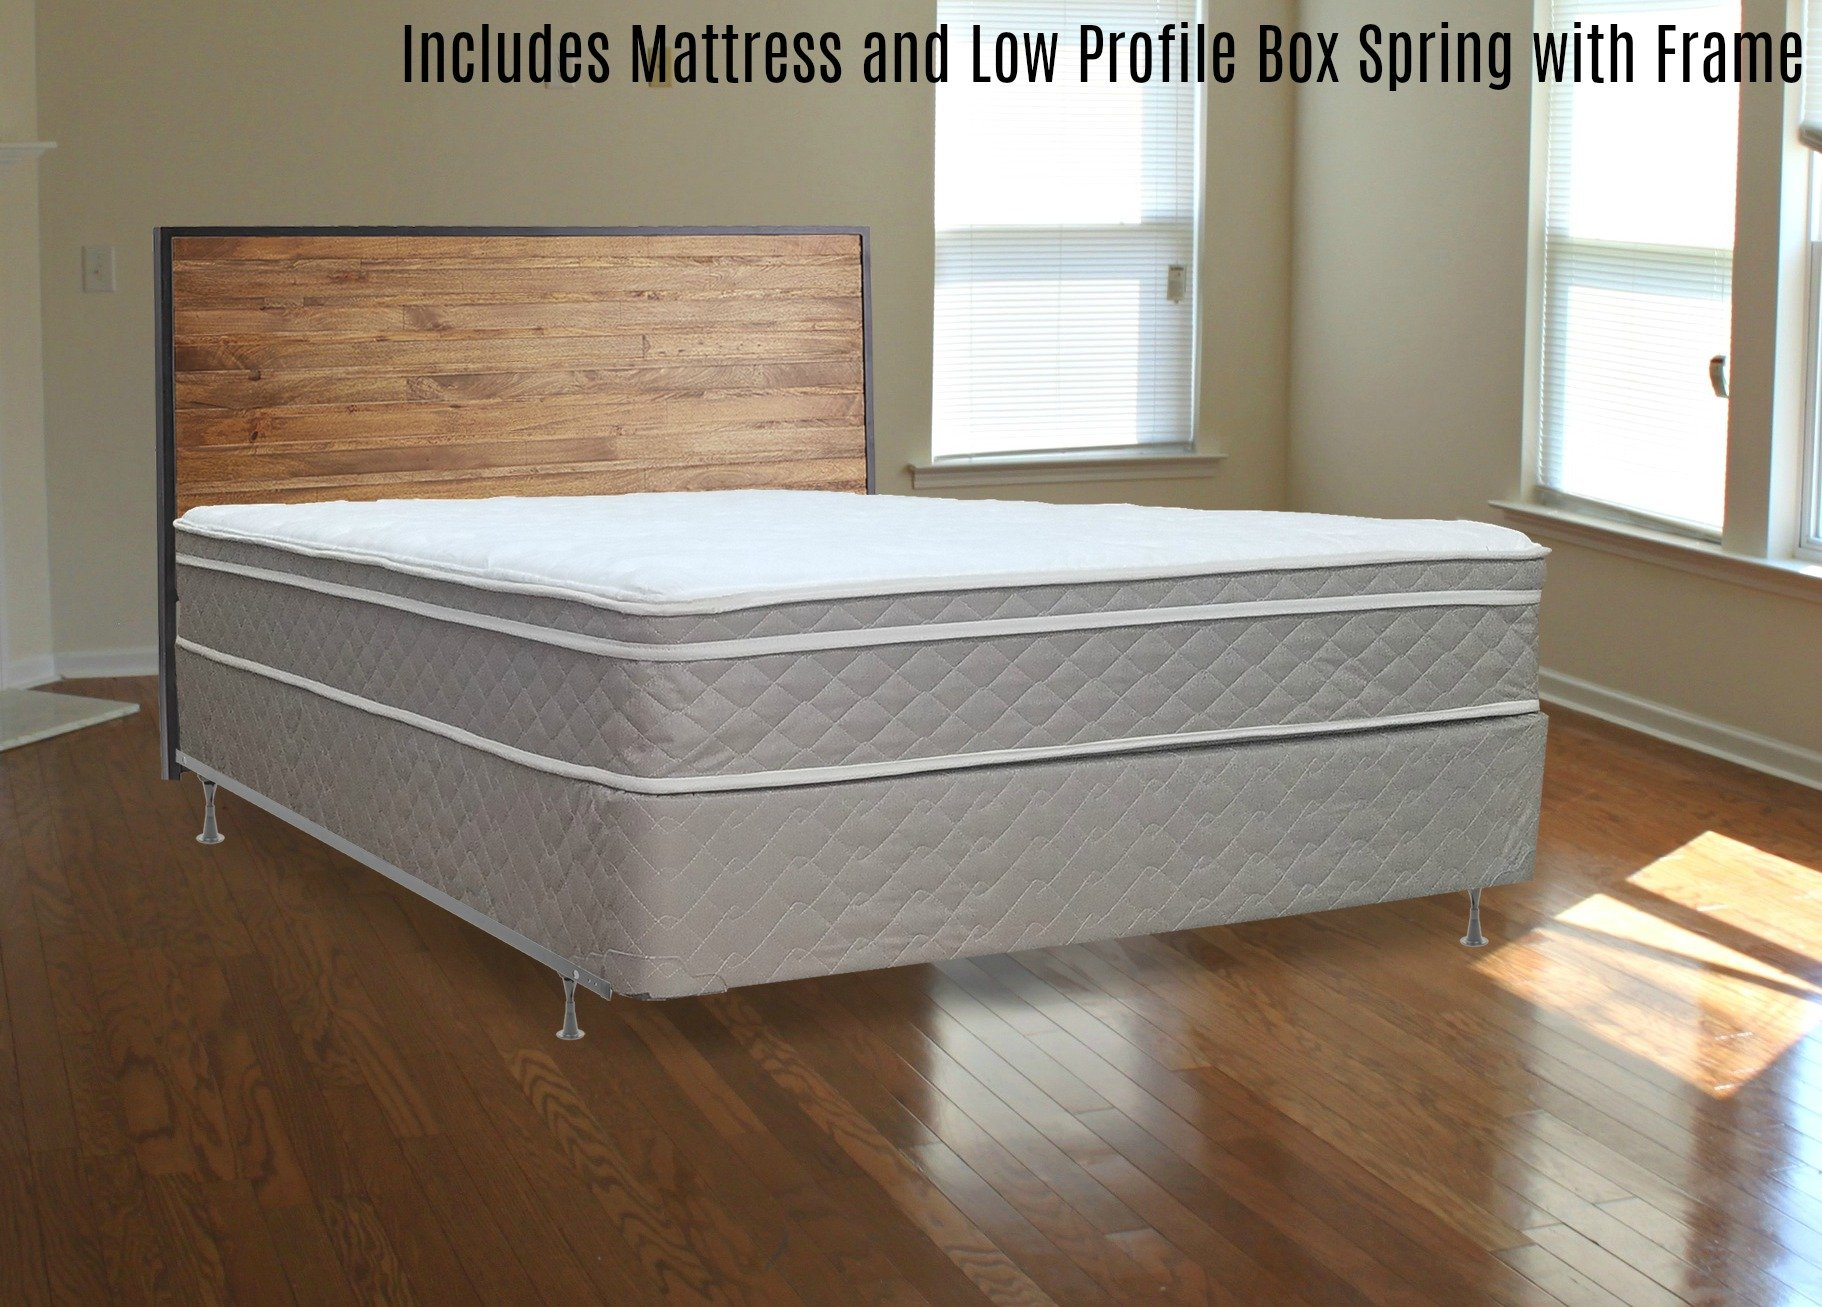 Full Assembled Orthopedic Mattress and 4'' Box Spring/Foundation Set with Frame, by Spinal Solution